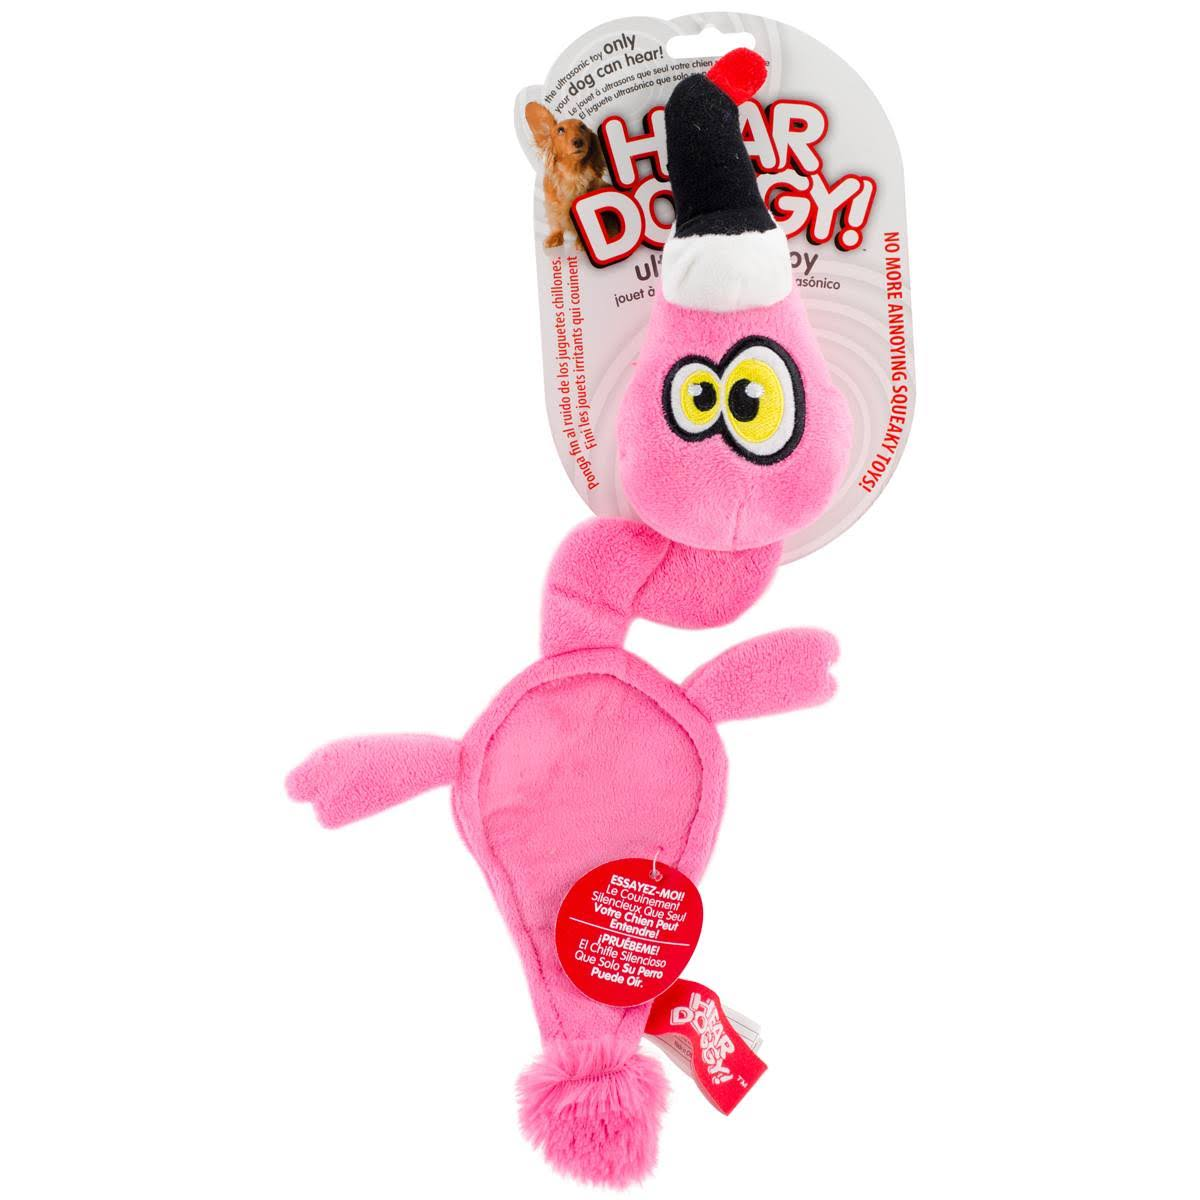 Hear Doggy! Ultrasonic Flattie Dog Toys - Pink Flamingo